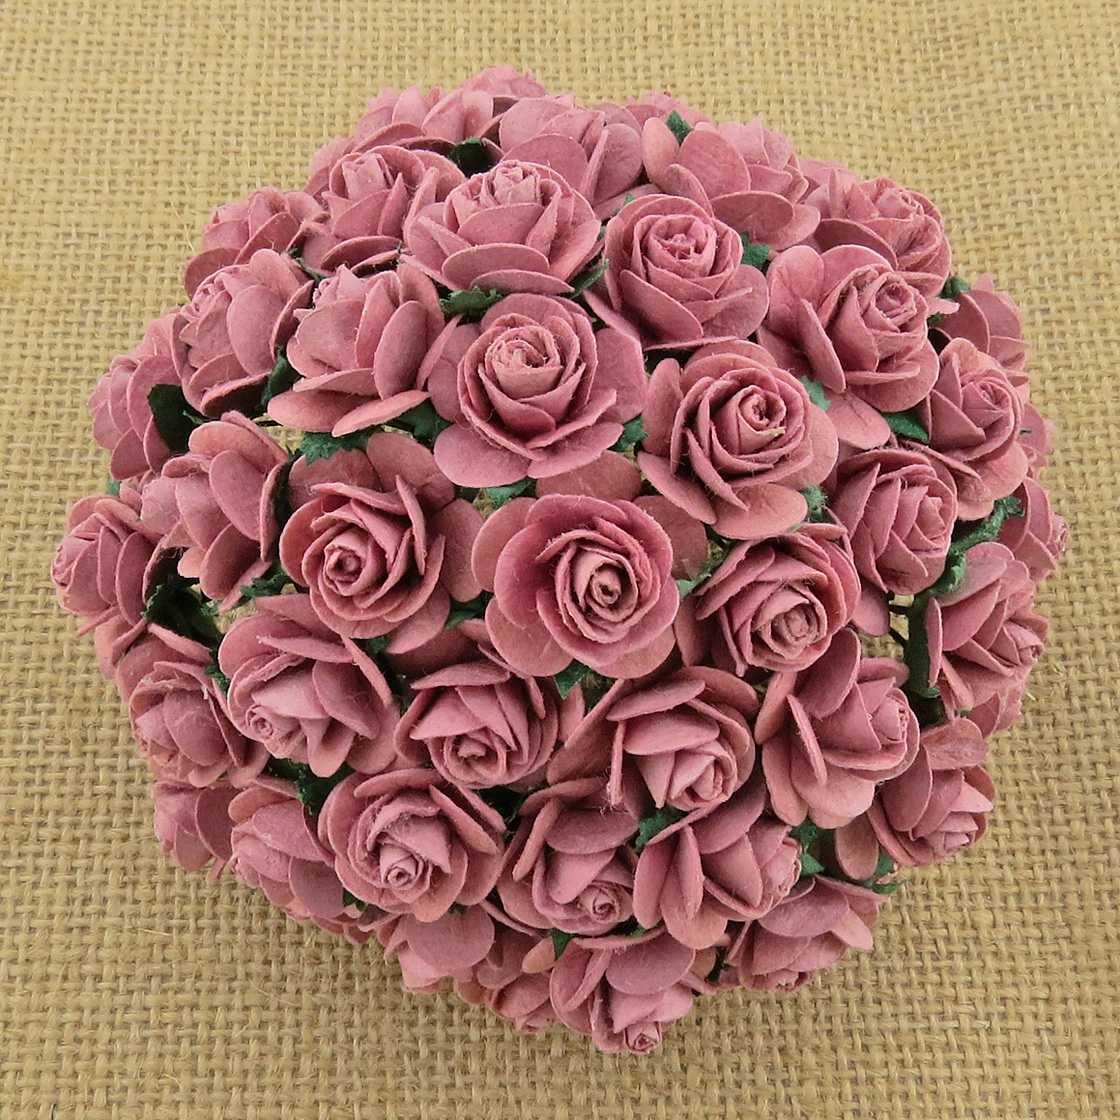 100 DUSKY PINK MULBERRY PAPER OPEN ROSES